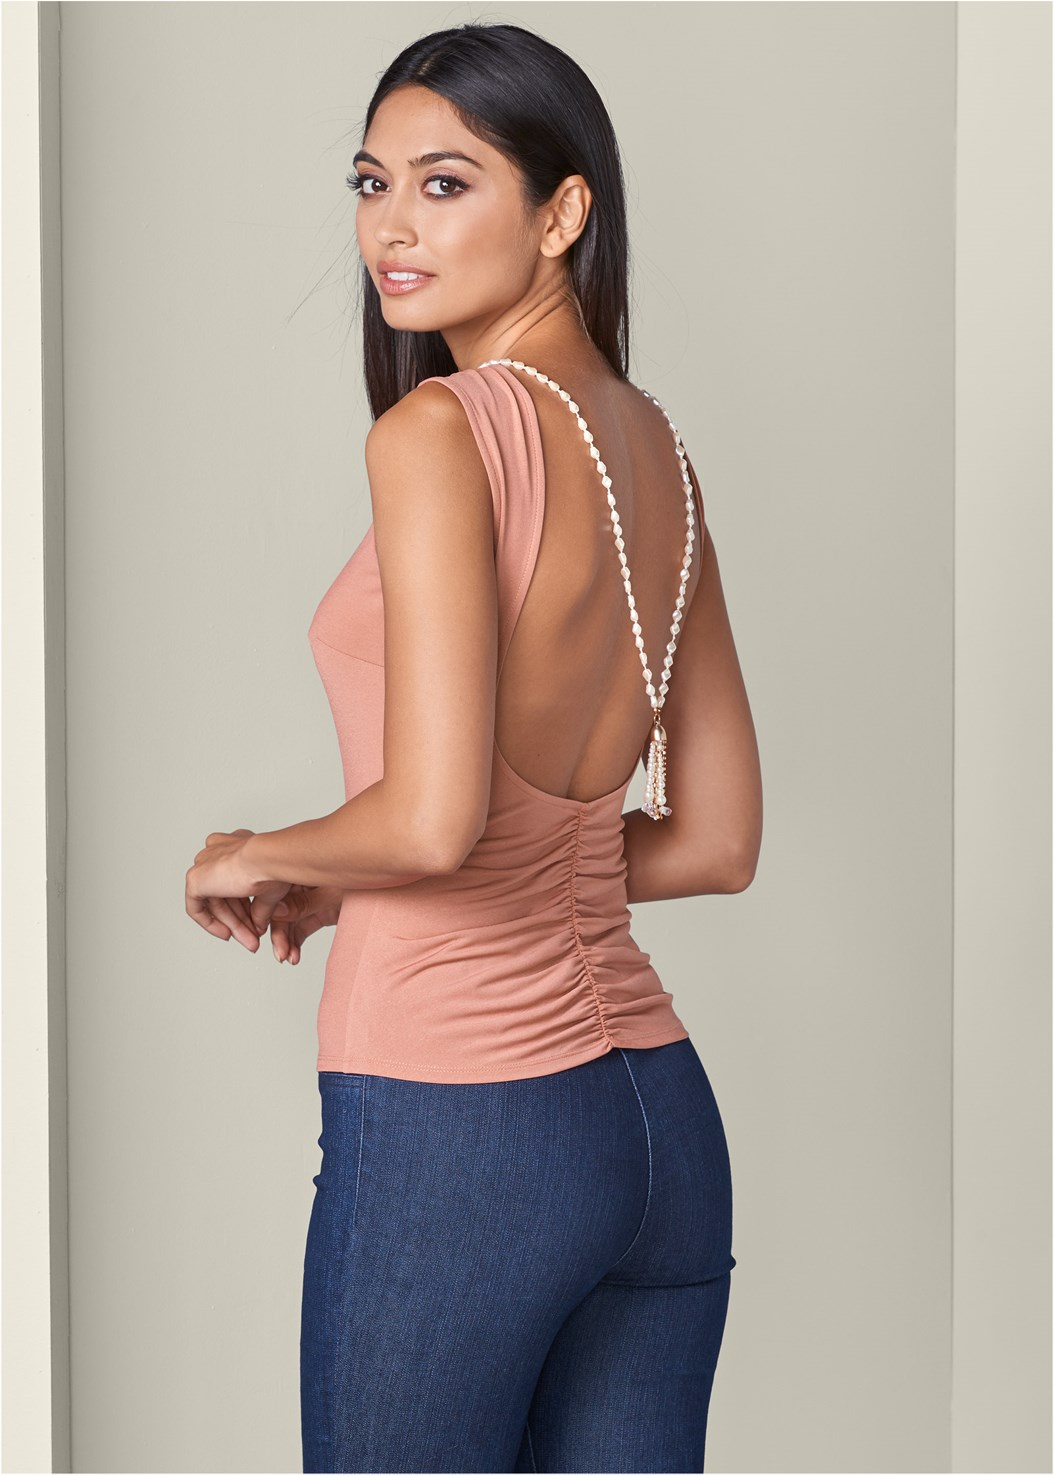 Open Back Pearl Detail Top,Mid Rise Slimming Stretch Jeggings,Cupid Backless Lace Up Bra,High Heel Strappy Sandals